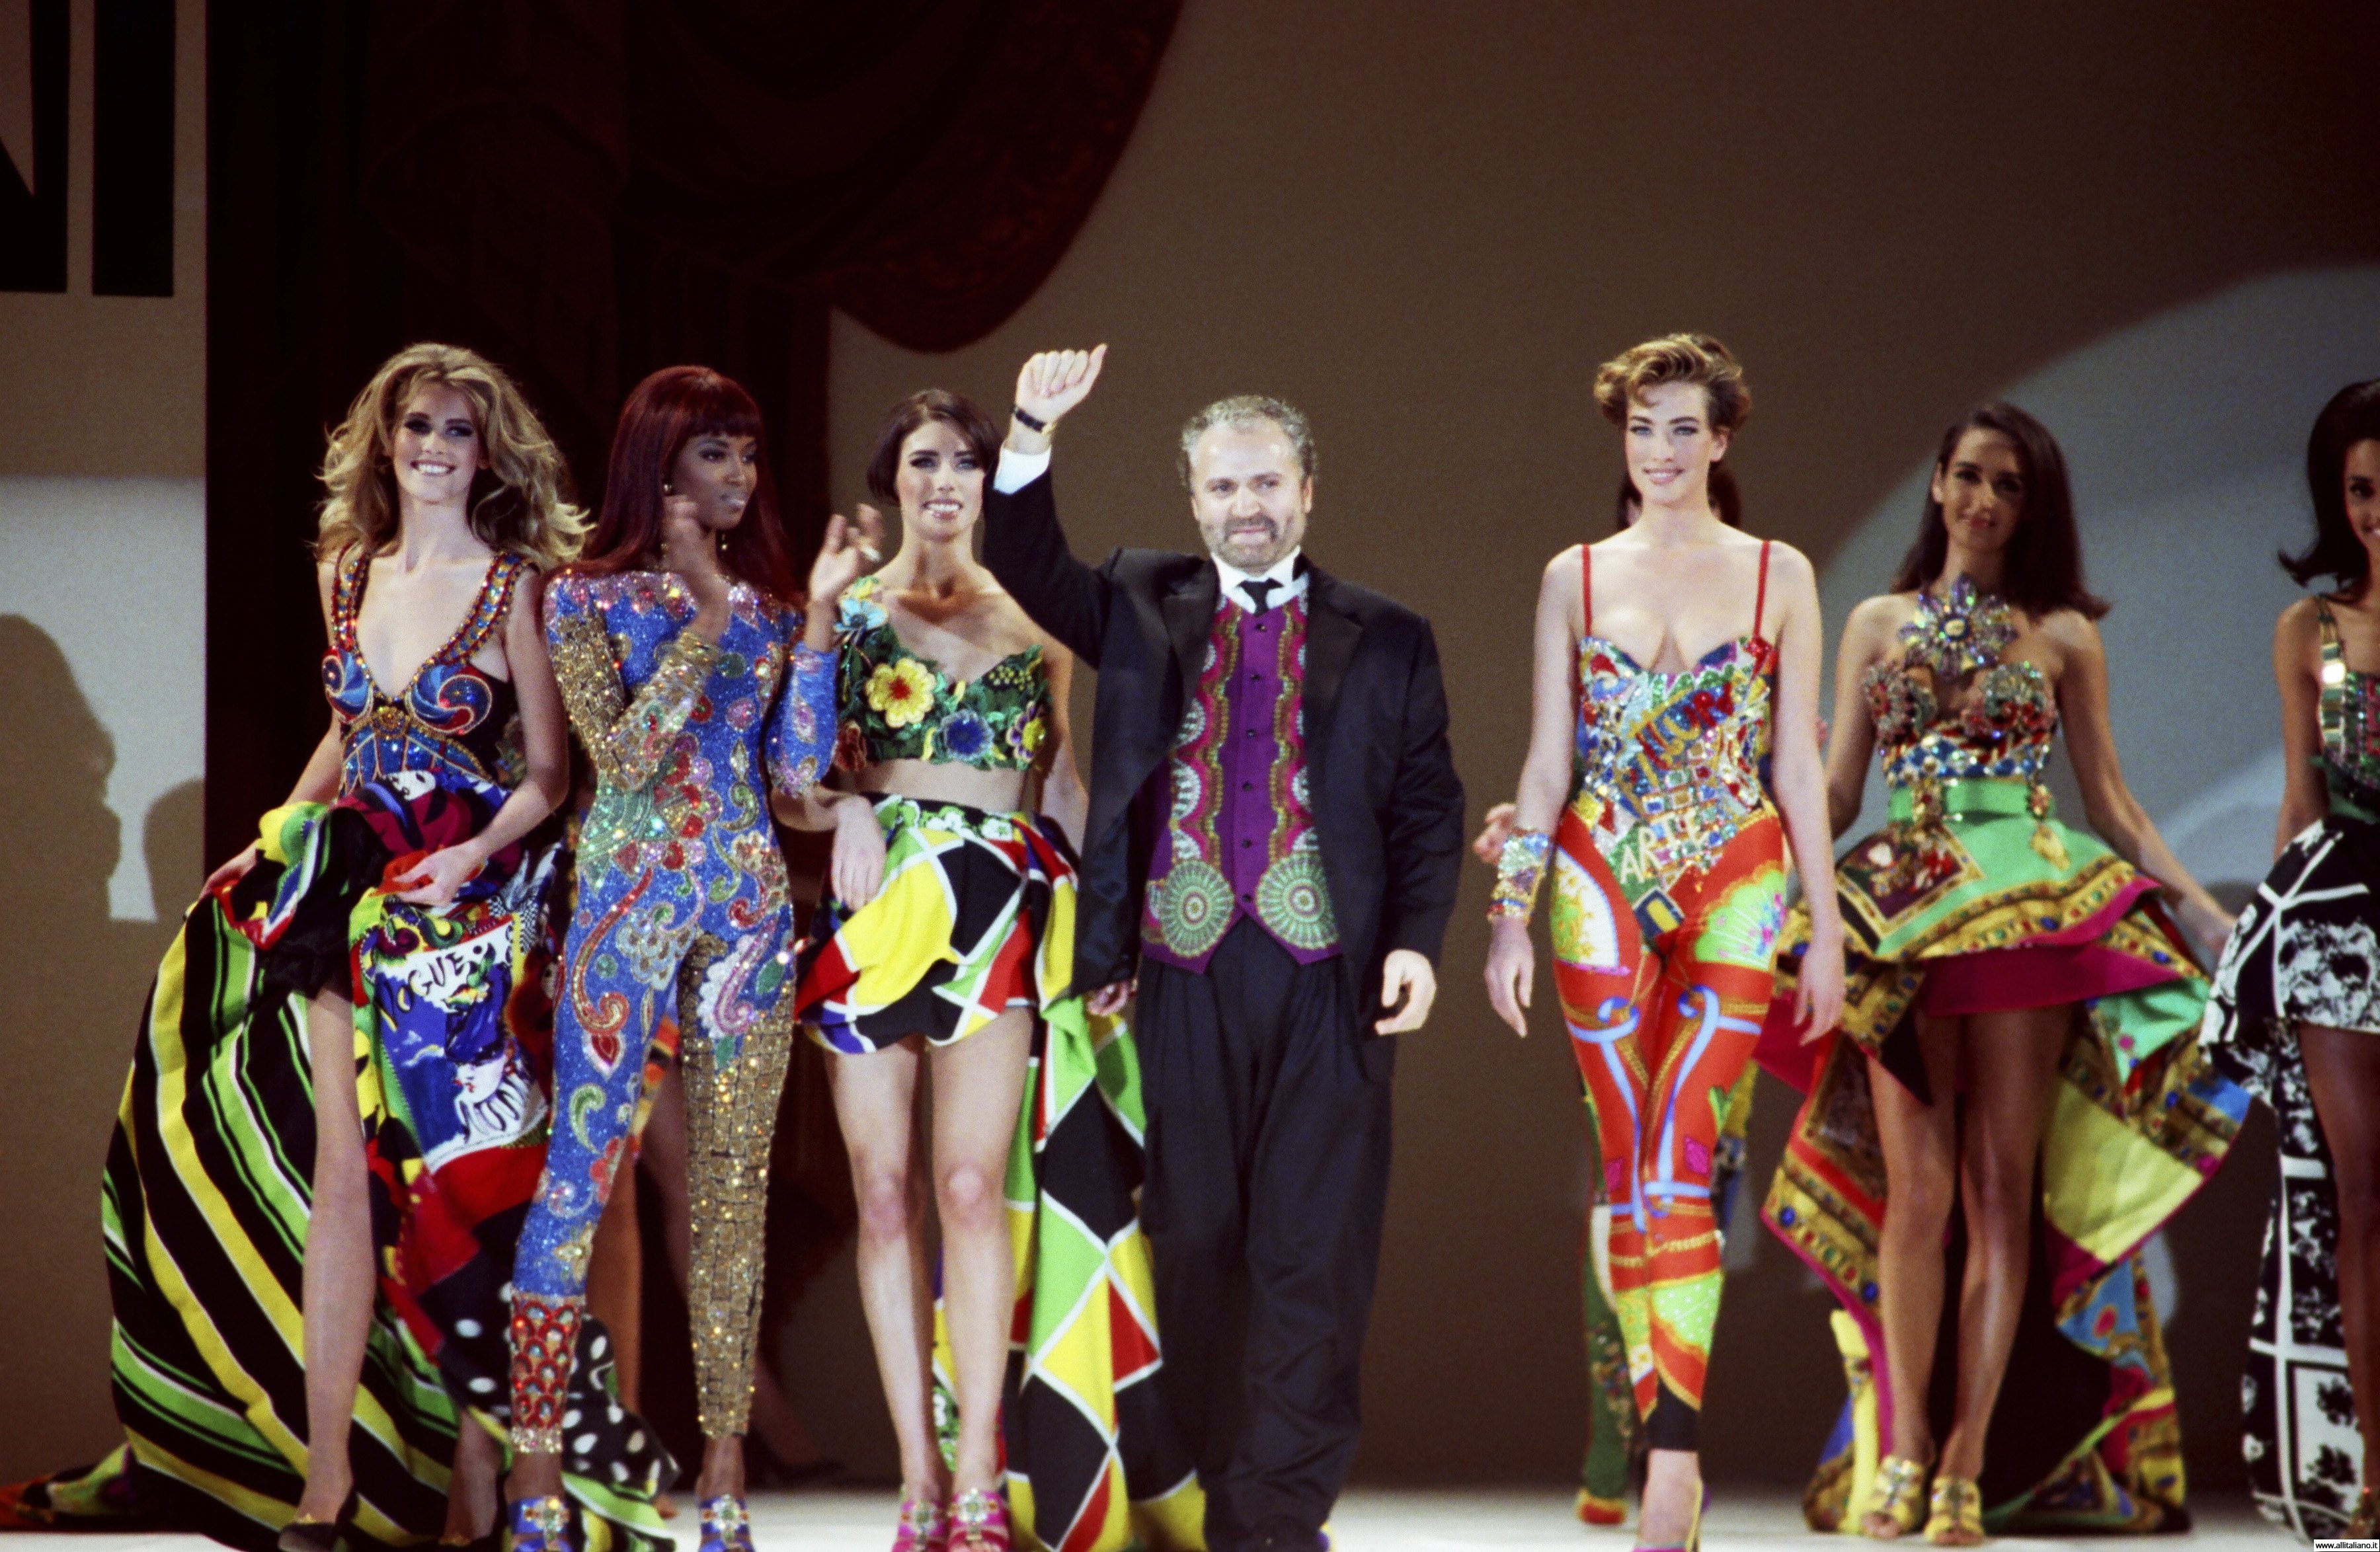 a brief history of versace who designed for the italian fashion labels de parisi genny callaghan and Fashion designer gianni versace was born in 1946 in reggio calabria versace designed for the italian fashion labels de parisi, genny callaghan, alma, and.